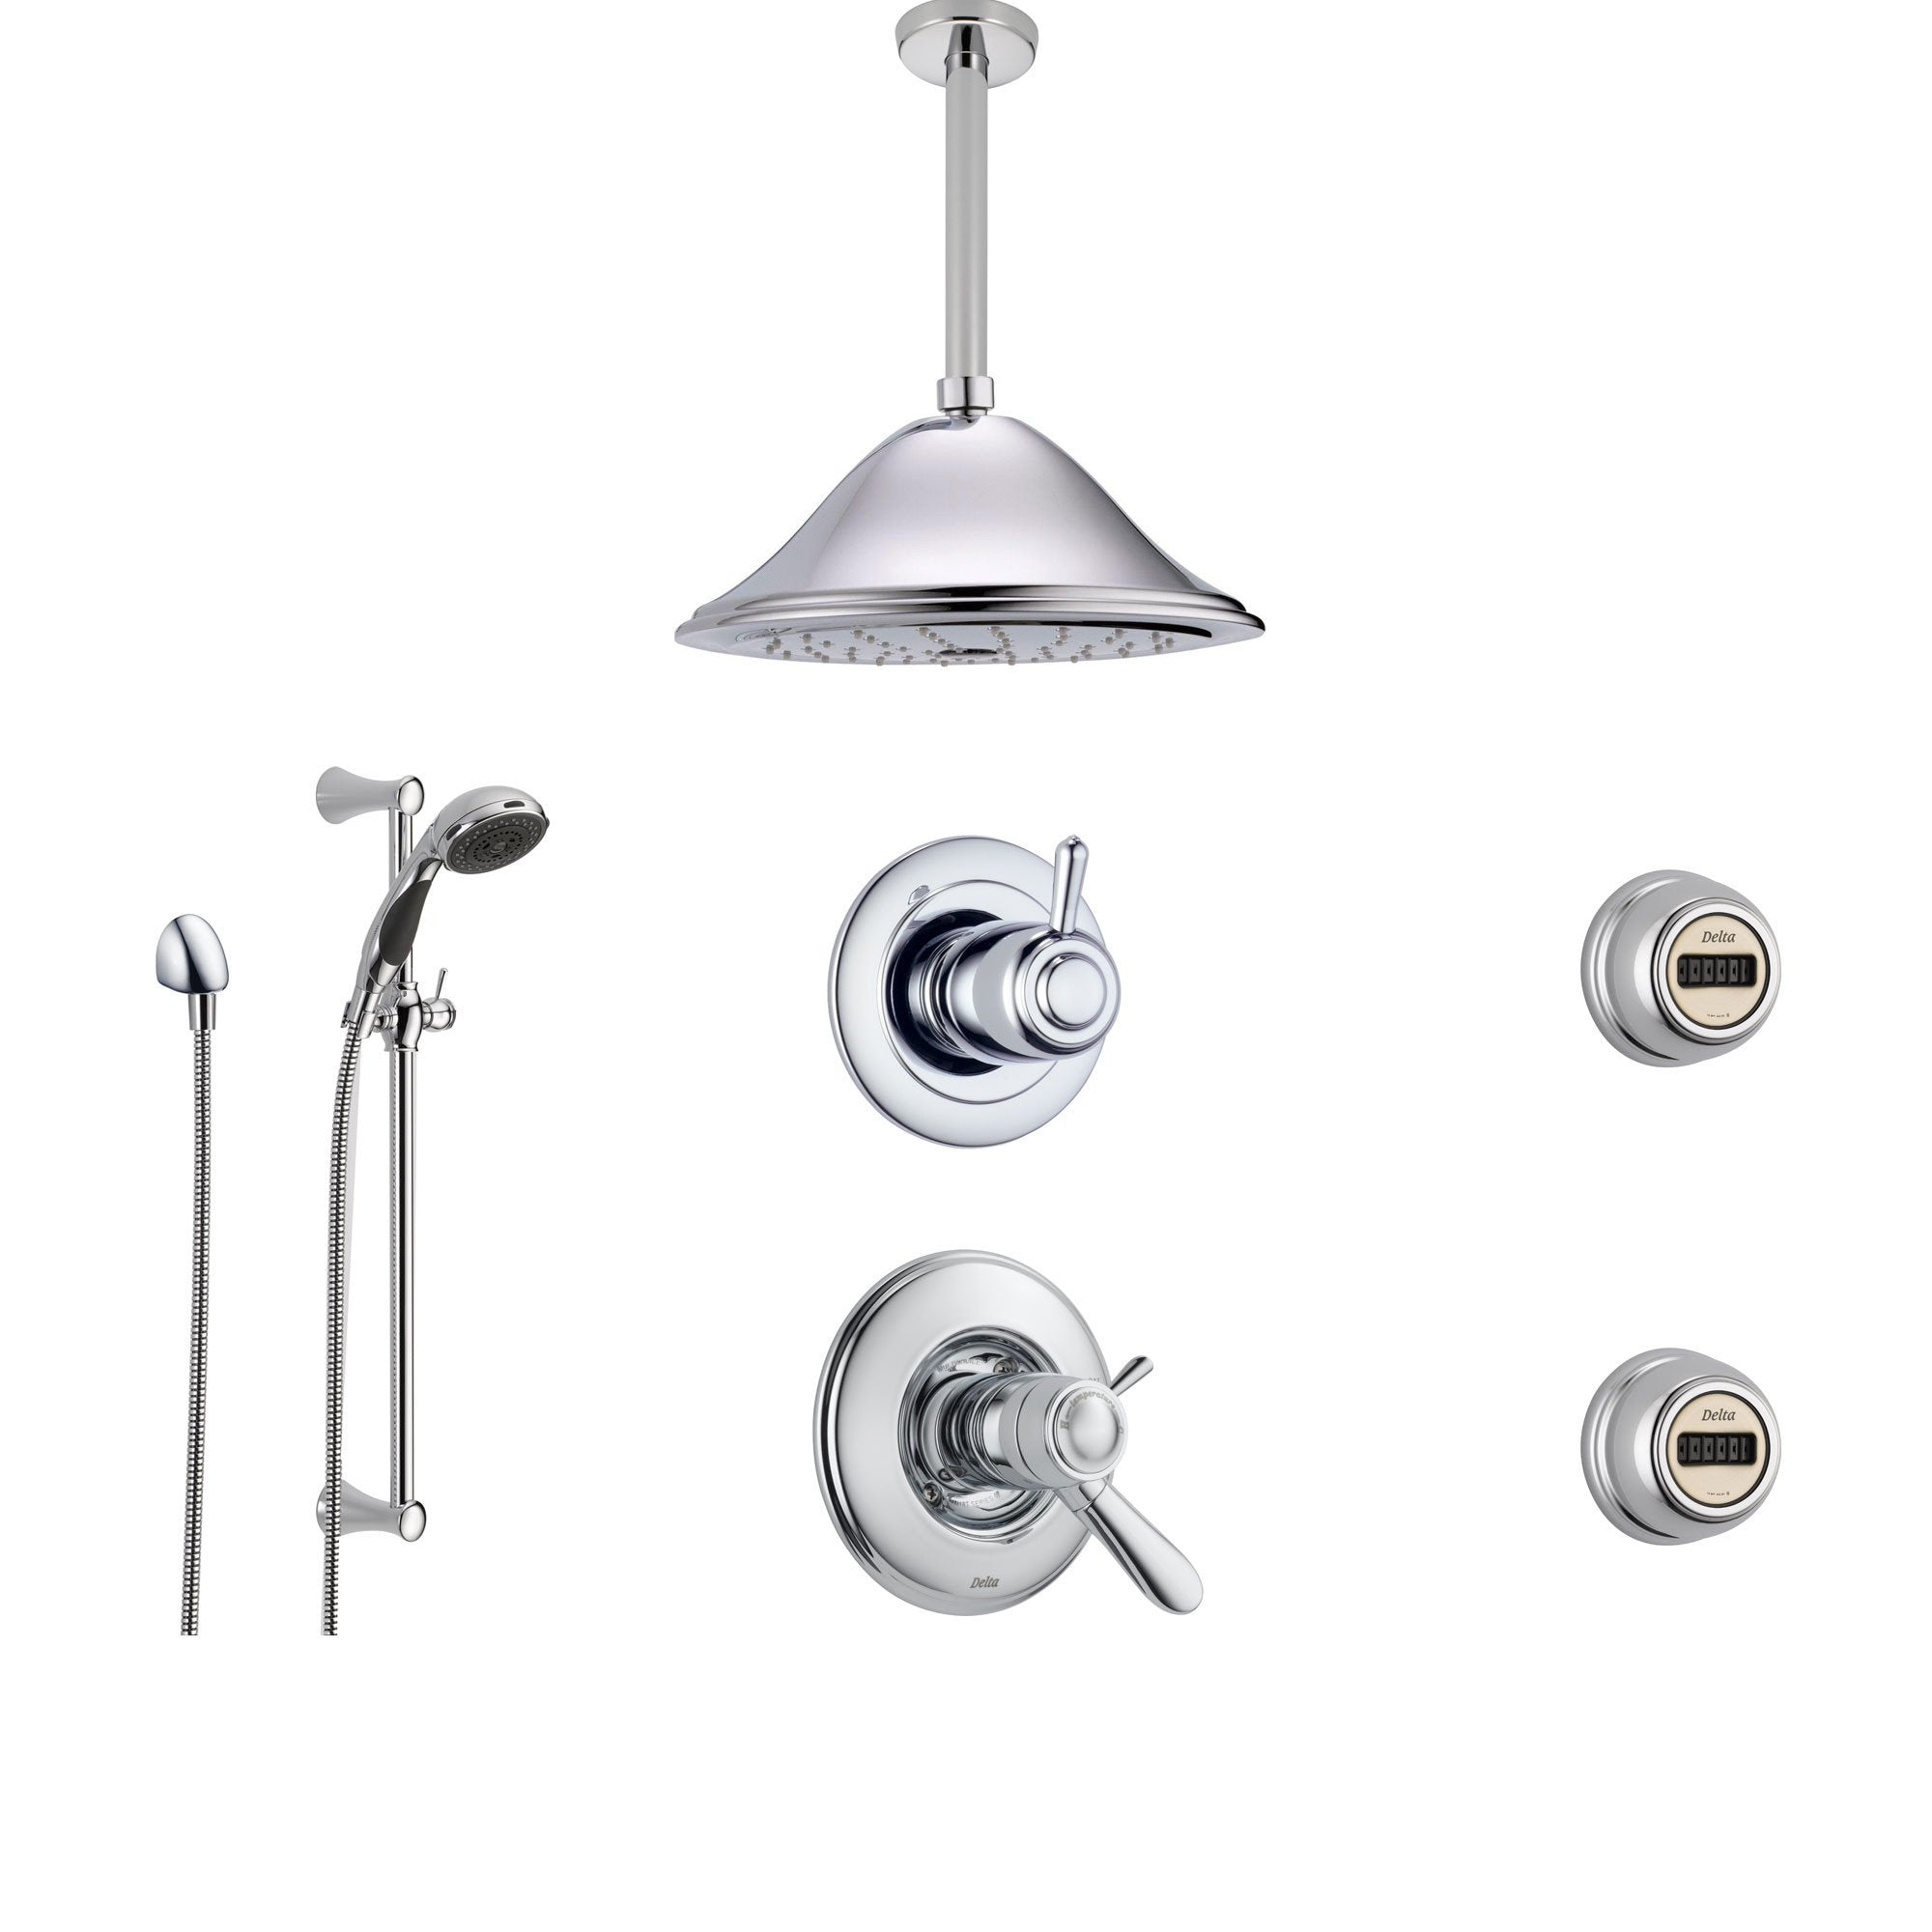 Delta Lahara Chrome Shower System with Thermostatic Shower Handle, 6-setting Diverter, Large Ceiling Mount Rain Showerhead, Handheld Shower Spray, and 2 Body Sprays SS17T3894